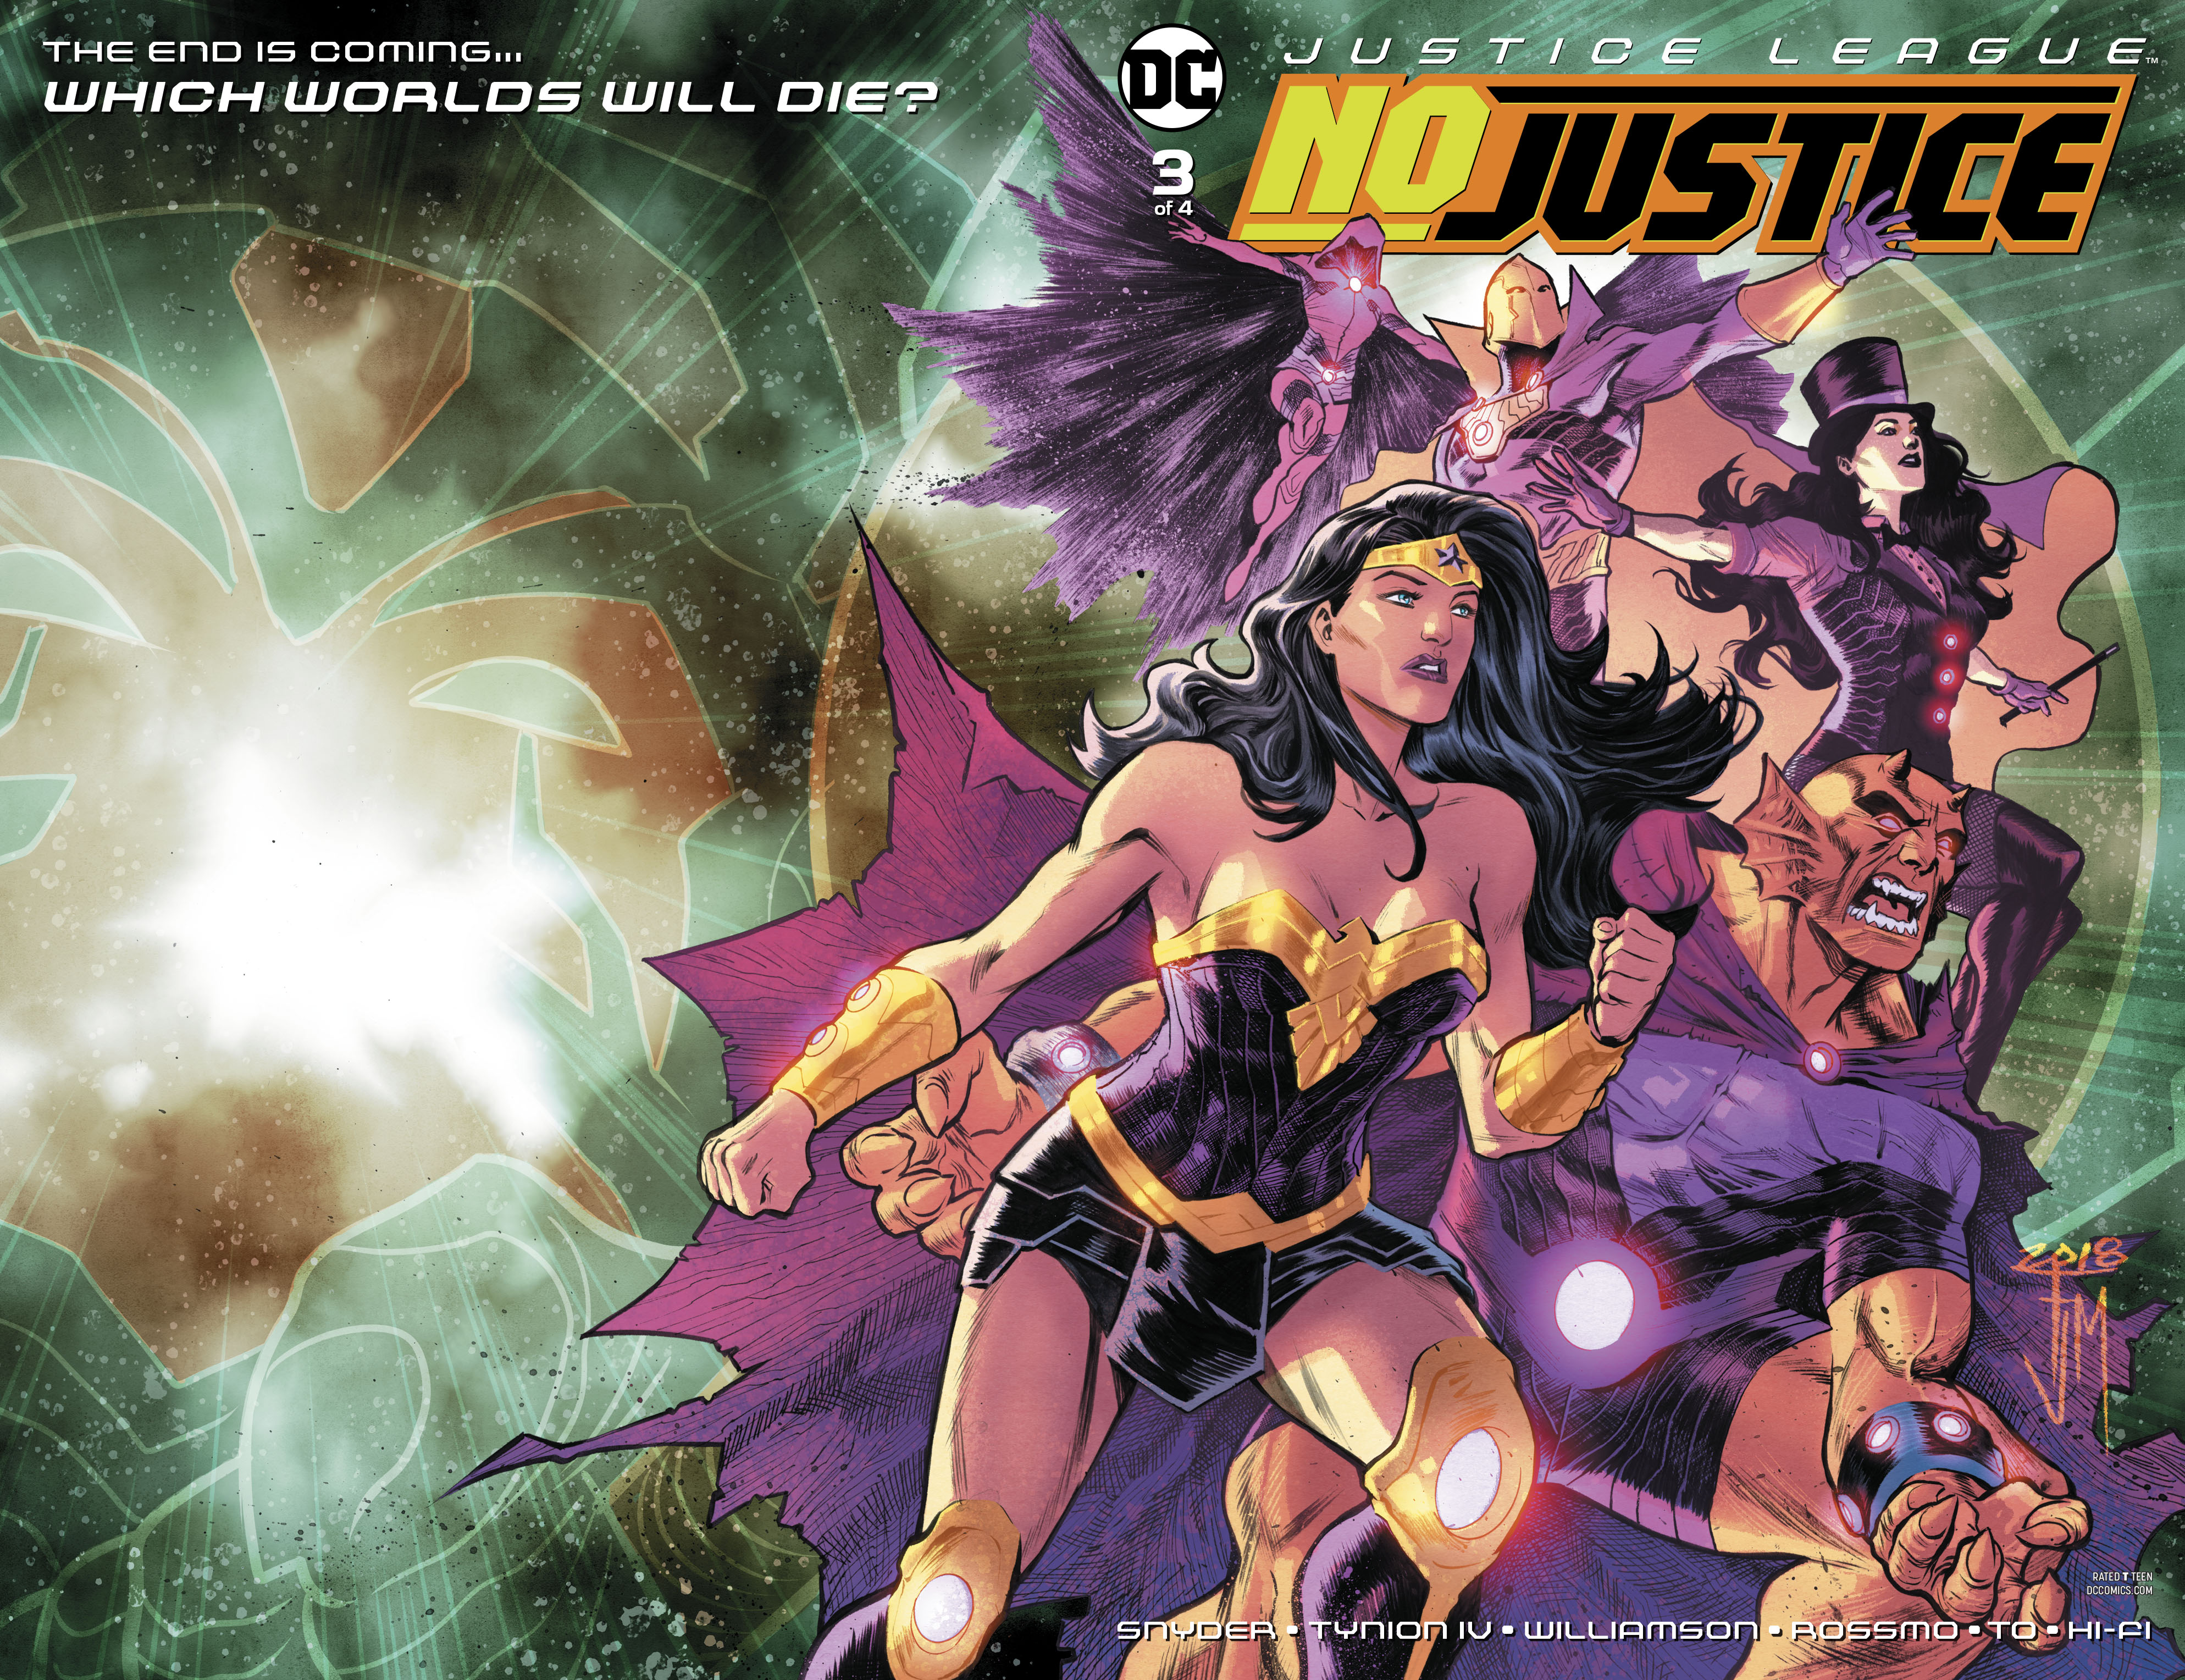 JUSTICE LEAGUE NO JUSTICE #3 (OF 4)